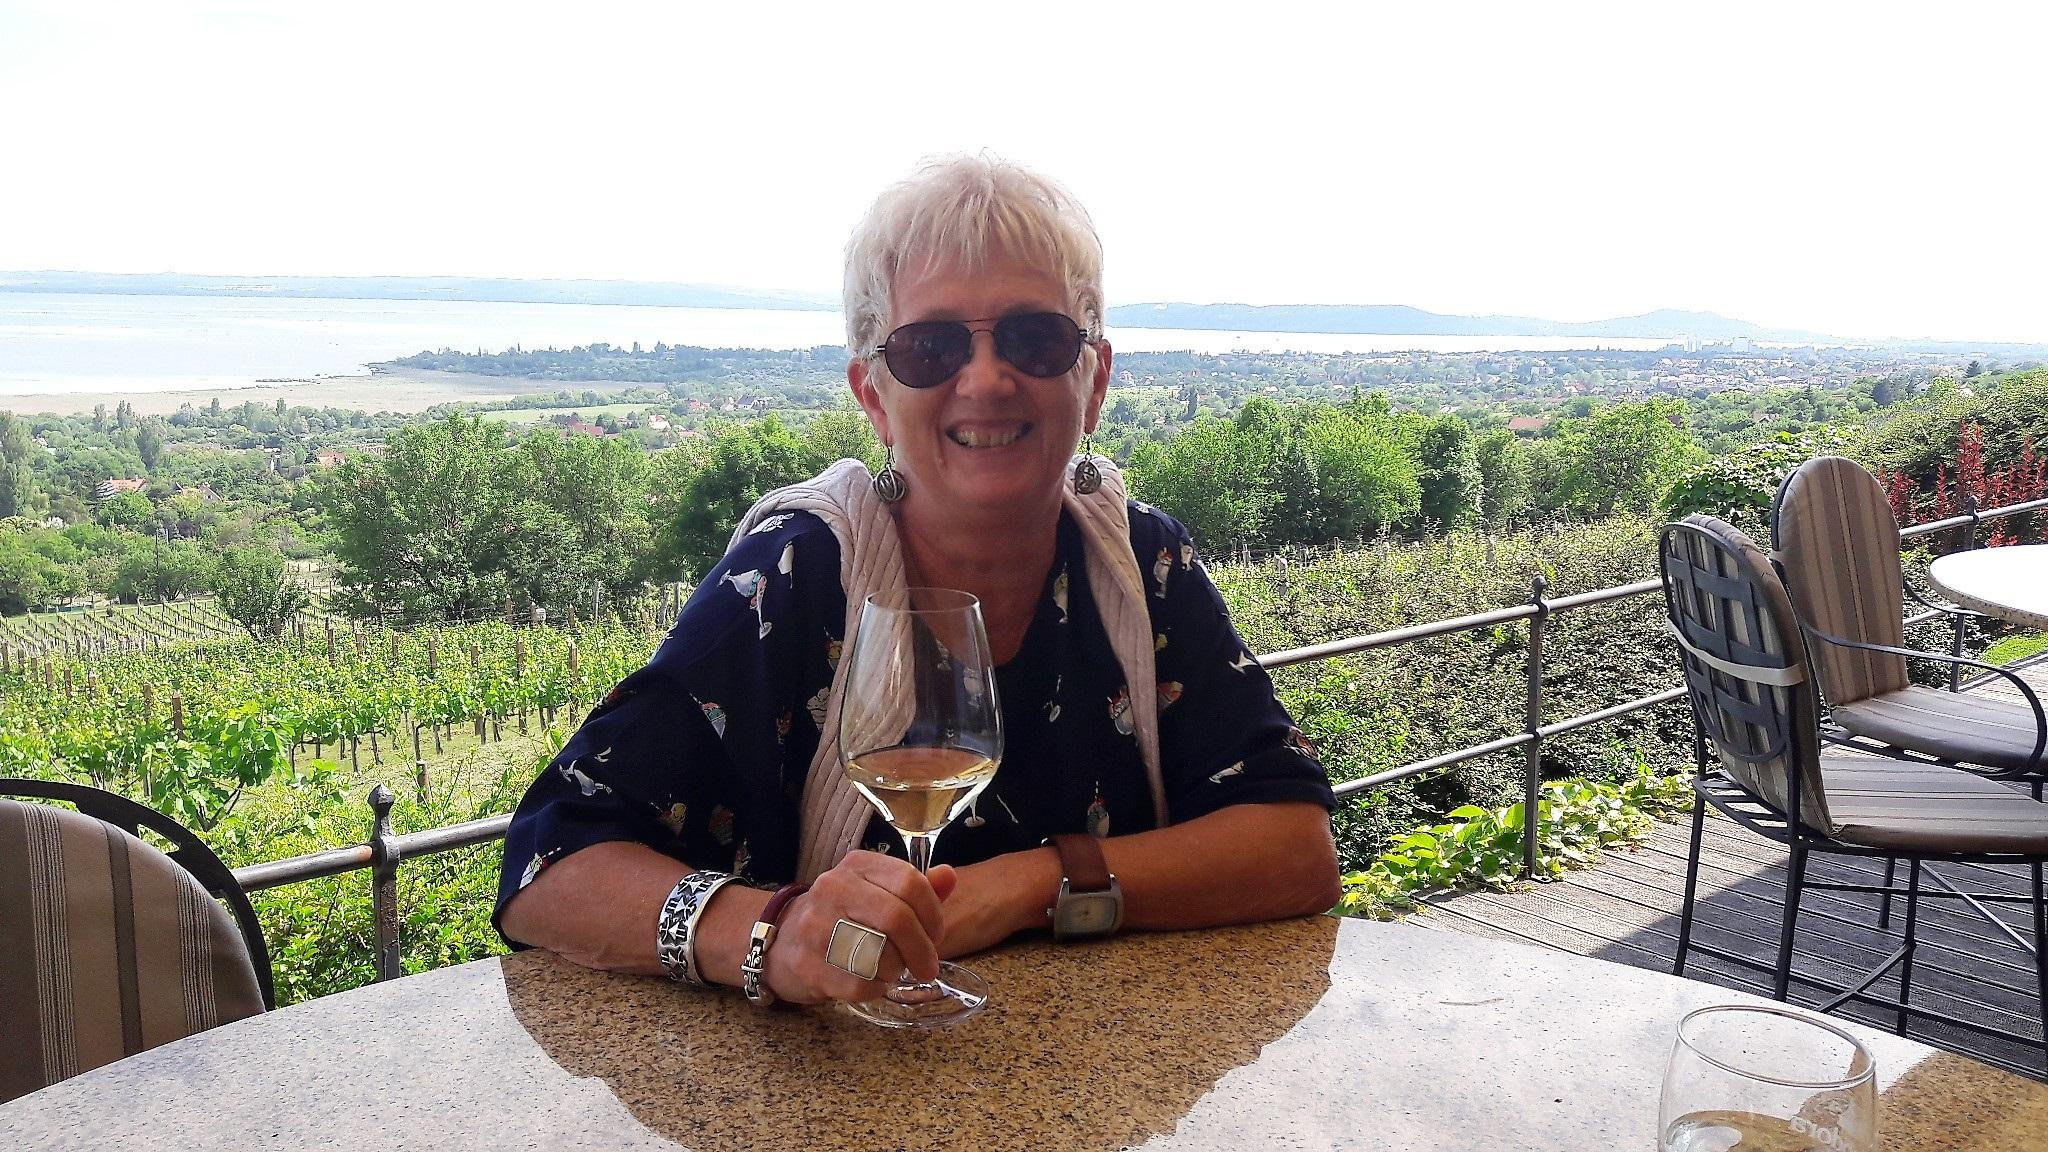 Interview Two: Agnes Weninger, Update: Former Editor-in-Chief, Best Of Budapest & Hungary